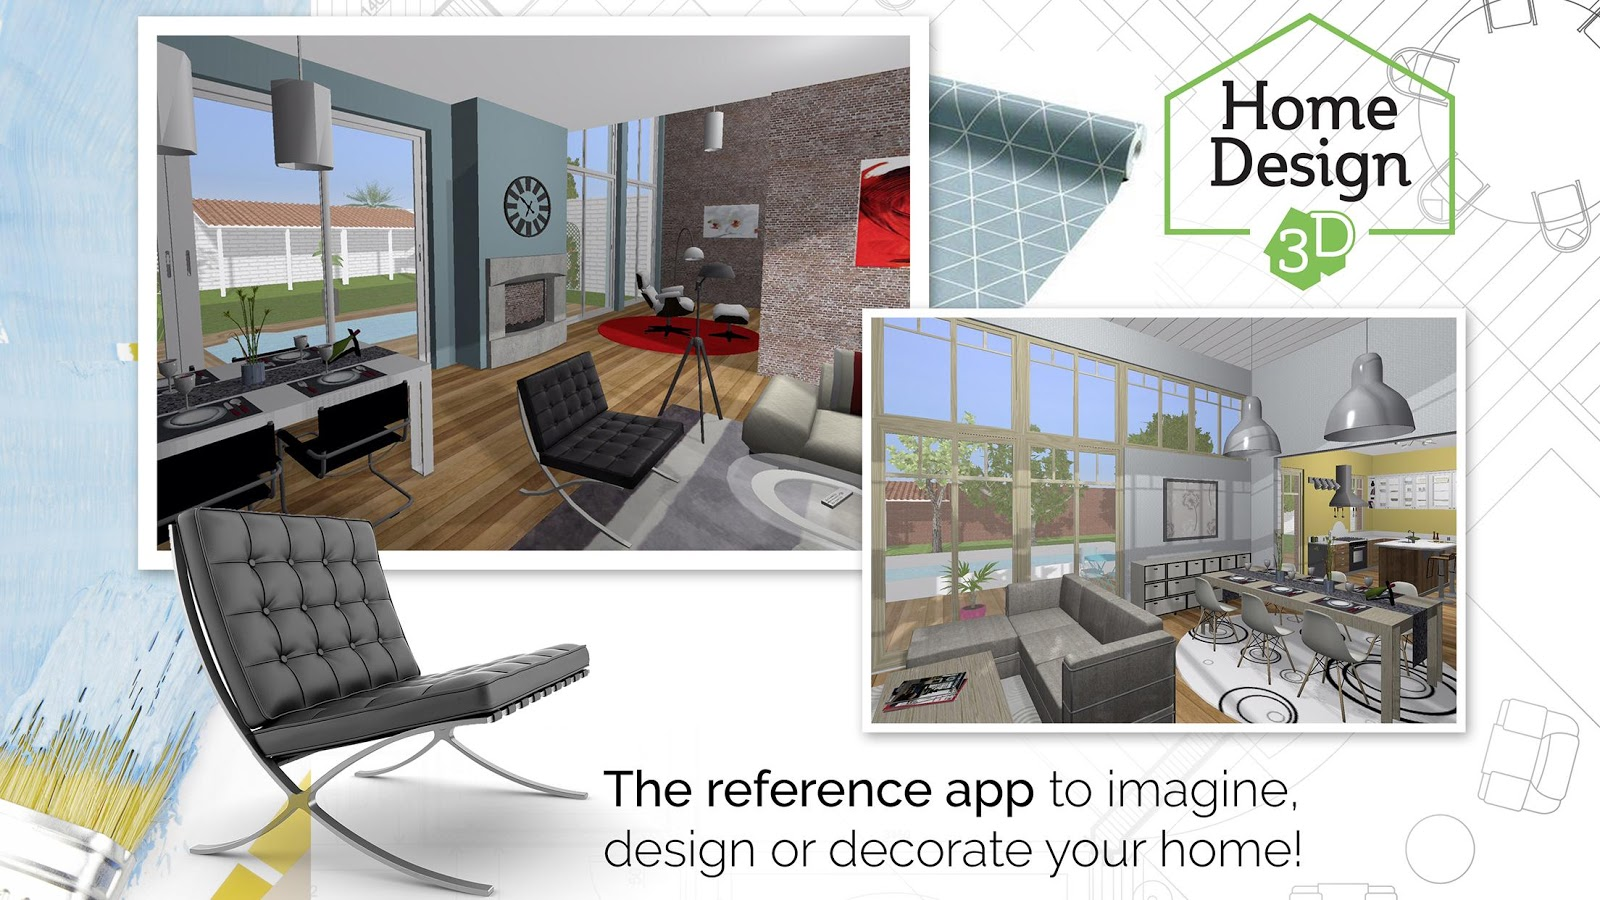 Home design 3d freemium android apps on google play Bedroom design app